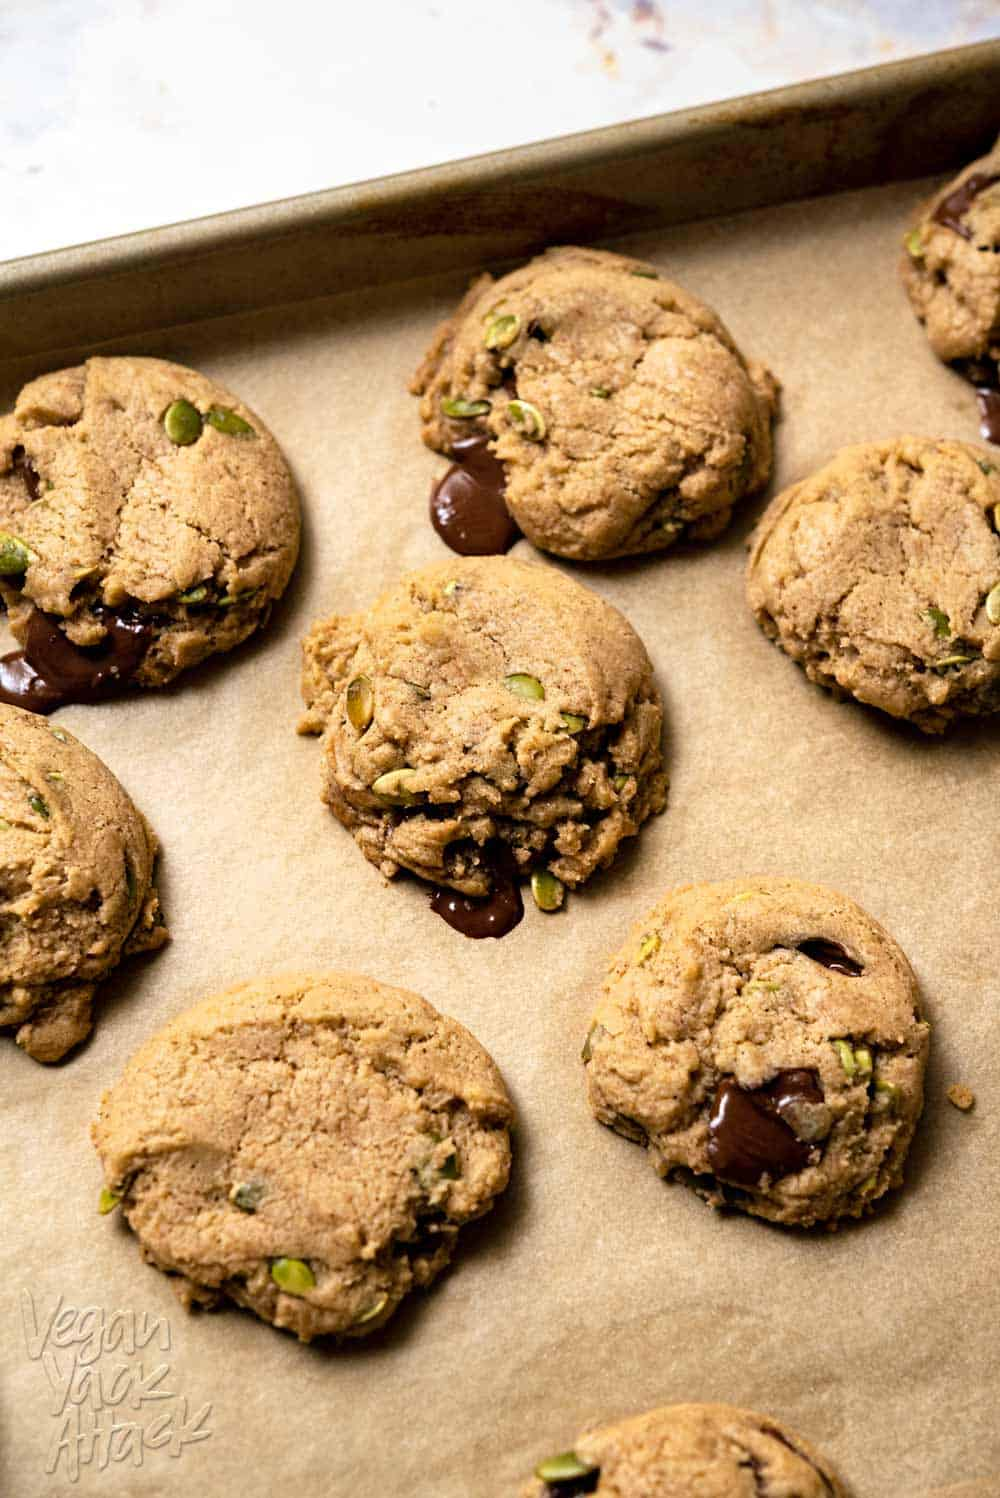 Freshly baked chocolate chai cookies on a parchment-lined baking sheet